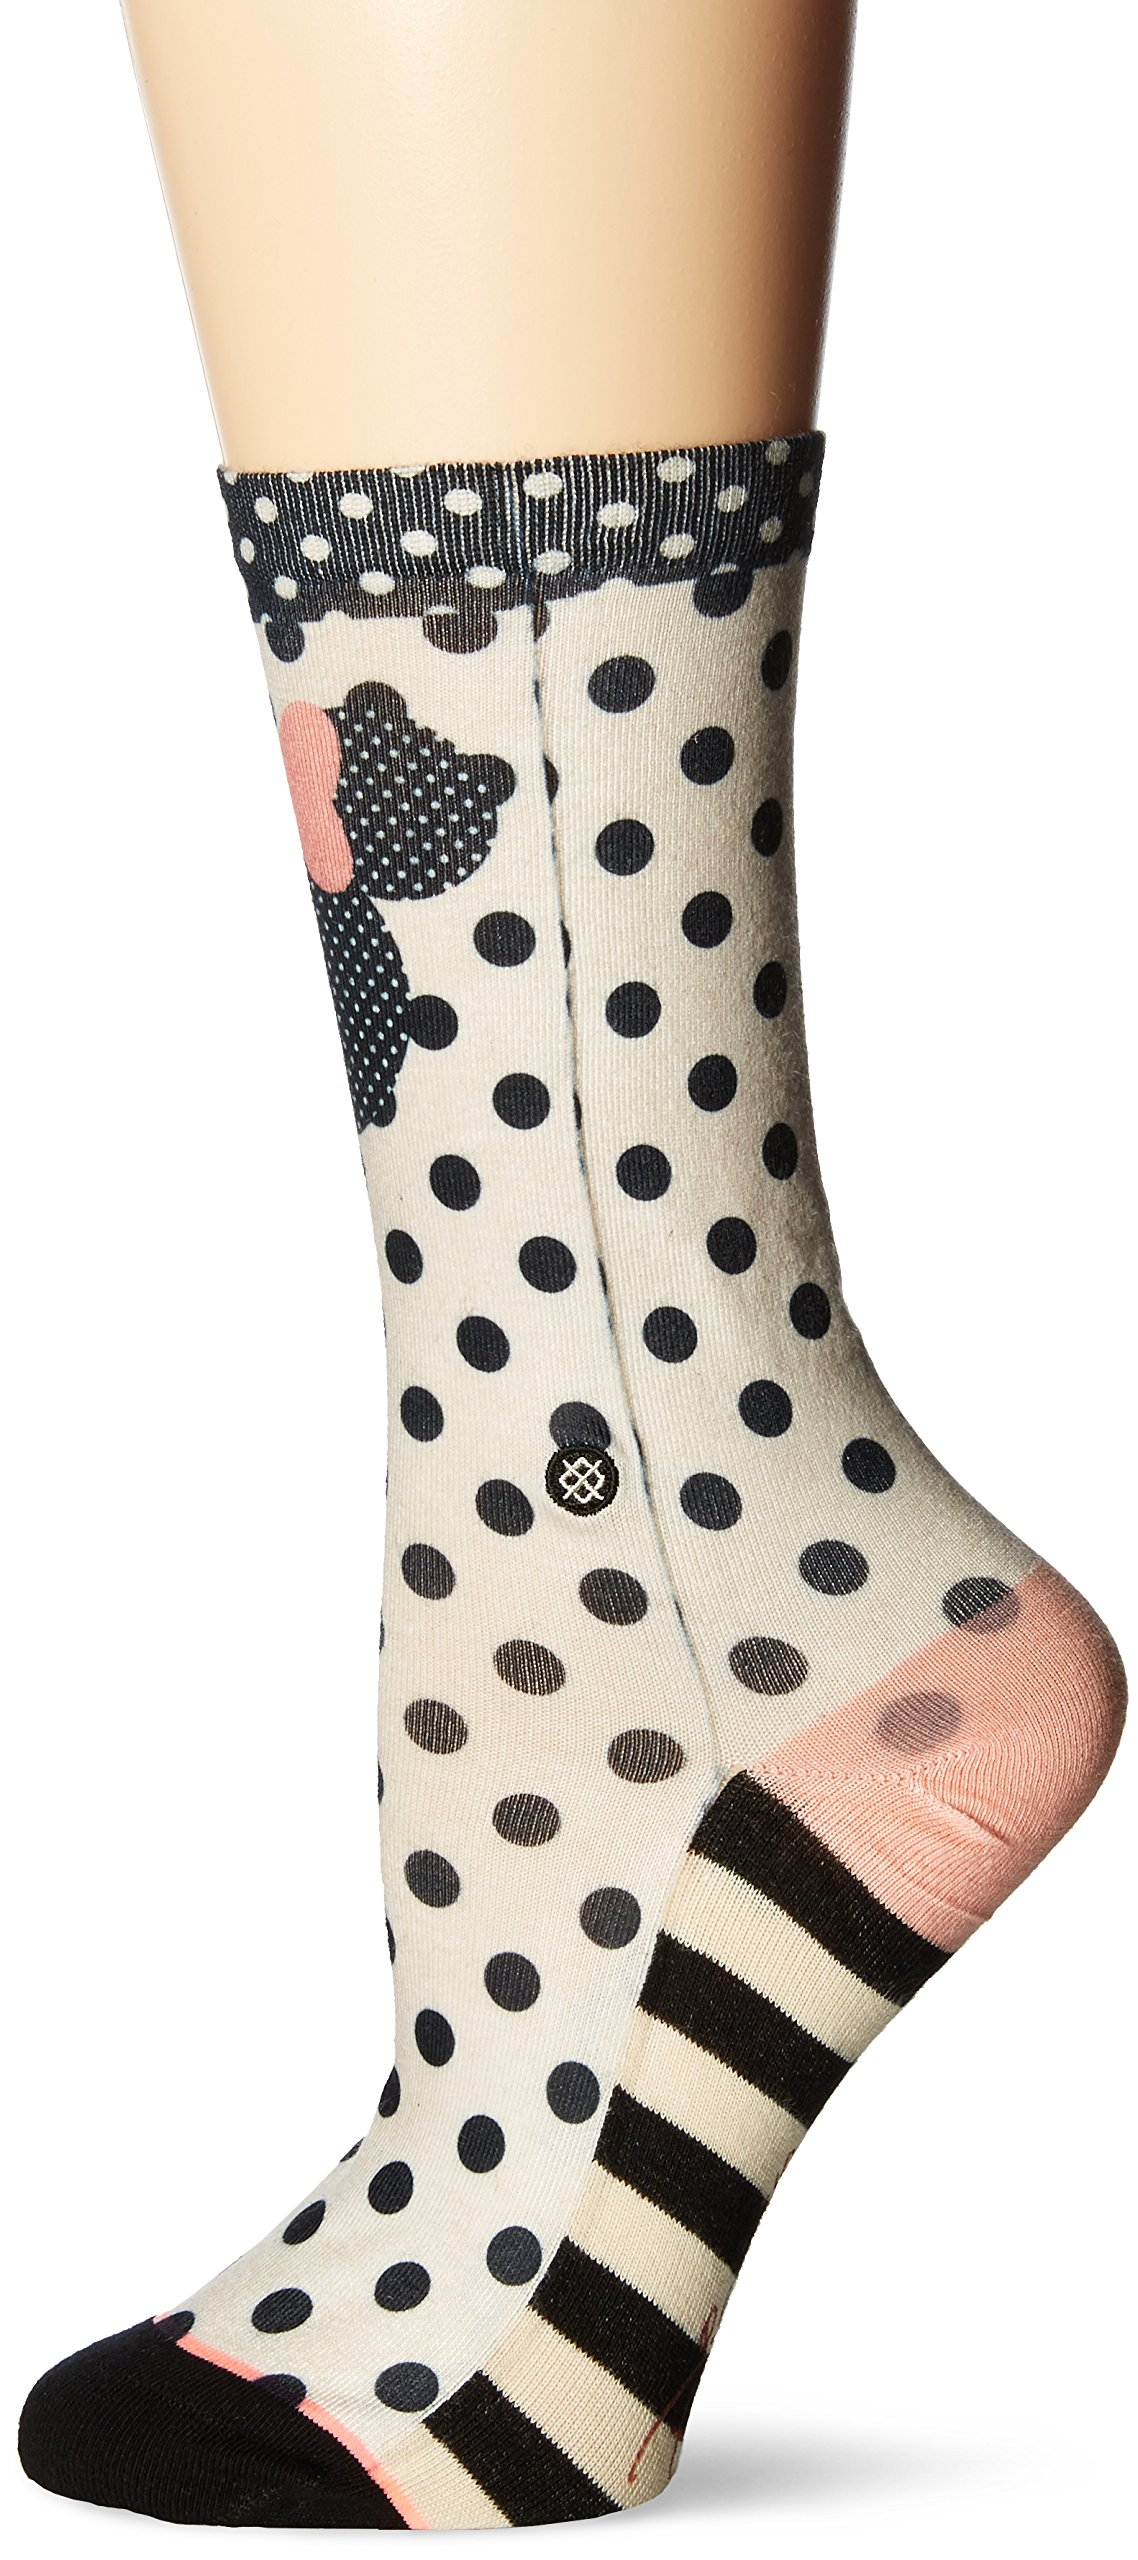 Stance Women's Sprinkled Minnie Mouse Crew Sock, Black, Medium by Stance